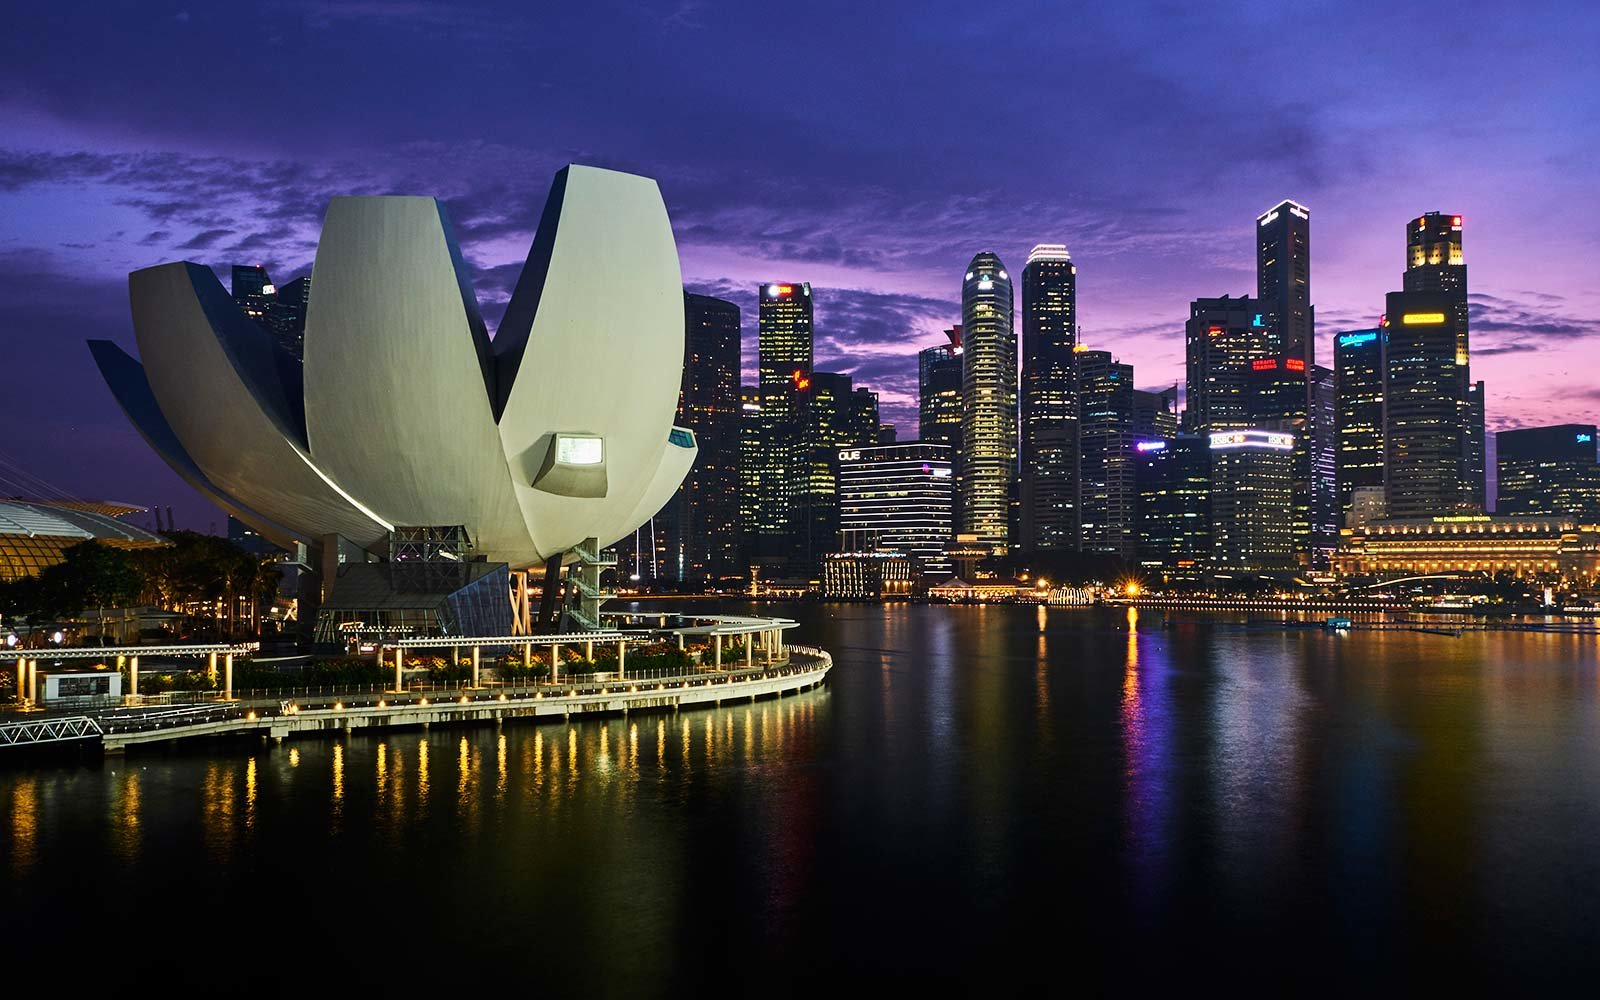 Singapore, Marina Bay, Arts and Sciences Museum